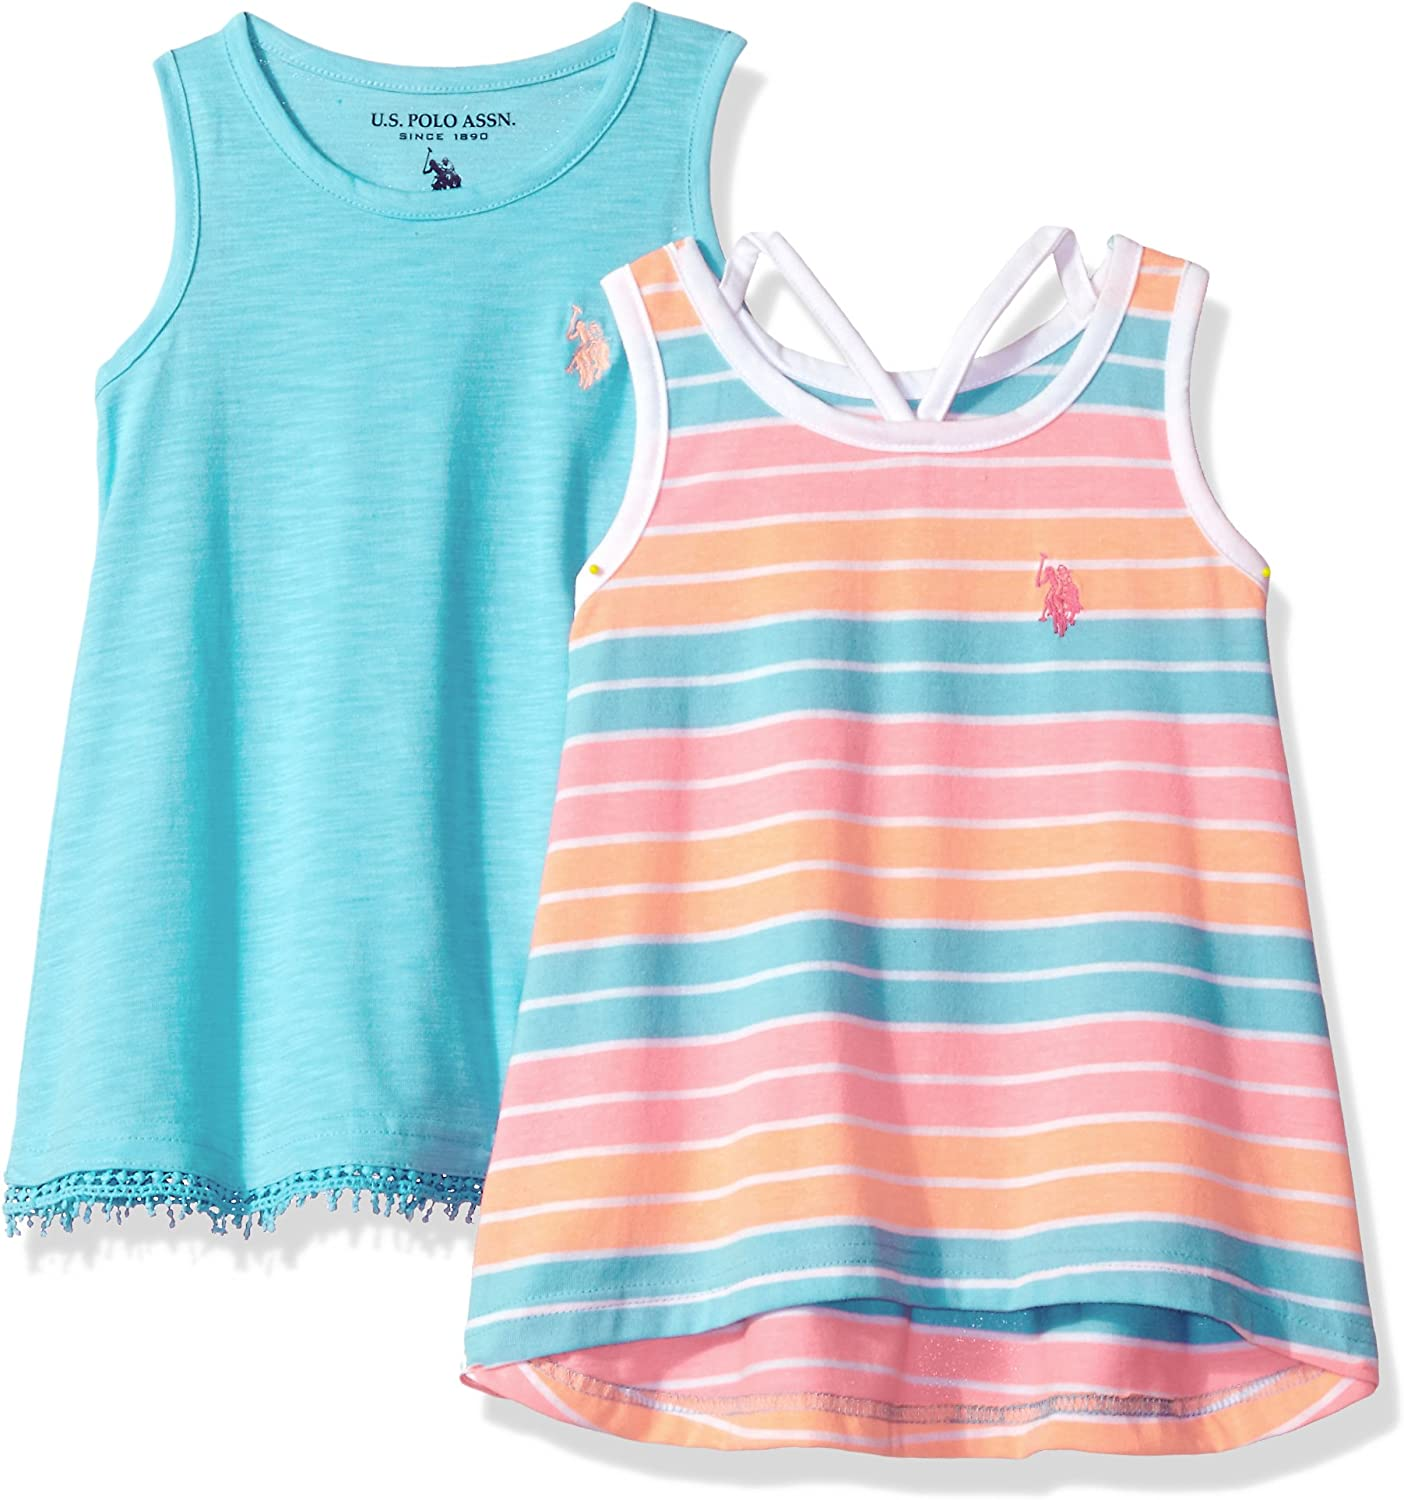 Girls Little 2 Pack Tank Tops Polo Assn U.S 1 Stripe and 1 Solid